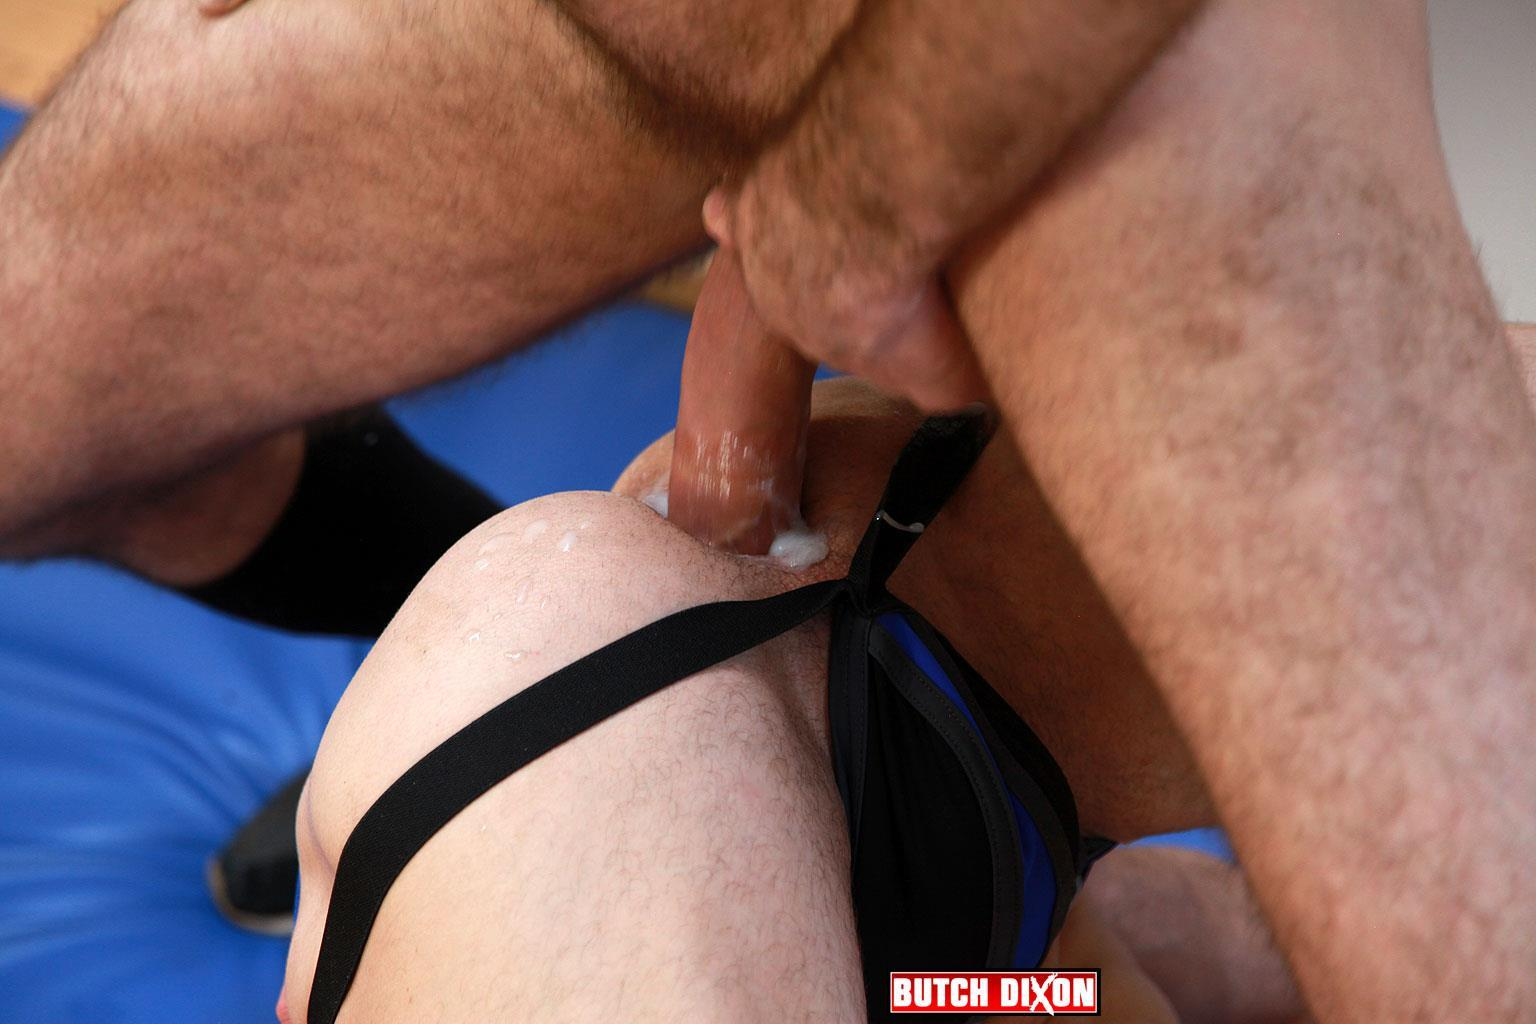 Butch-Dixon-Aitor-Bravo-and-Craig-Daniel-Big-Uncut-Cock-Barebacking-Breeding-BBBH-Amateur-Gay-Porn-31 Craig Daniel Barebacking Aitor Bravo With His Huge Uncut Cock